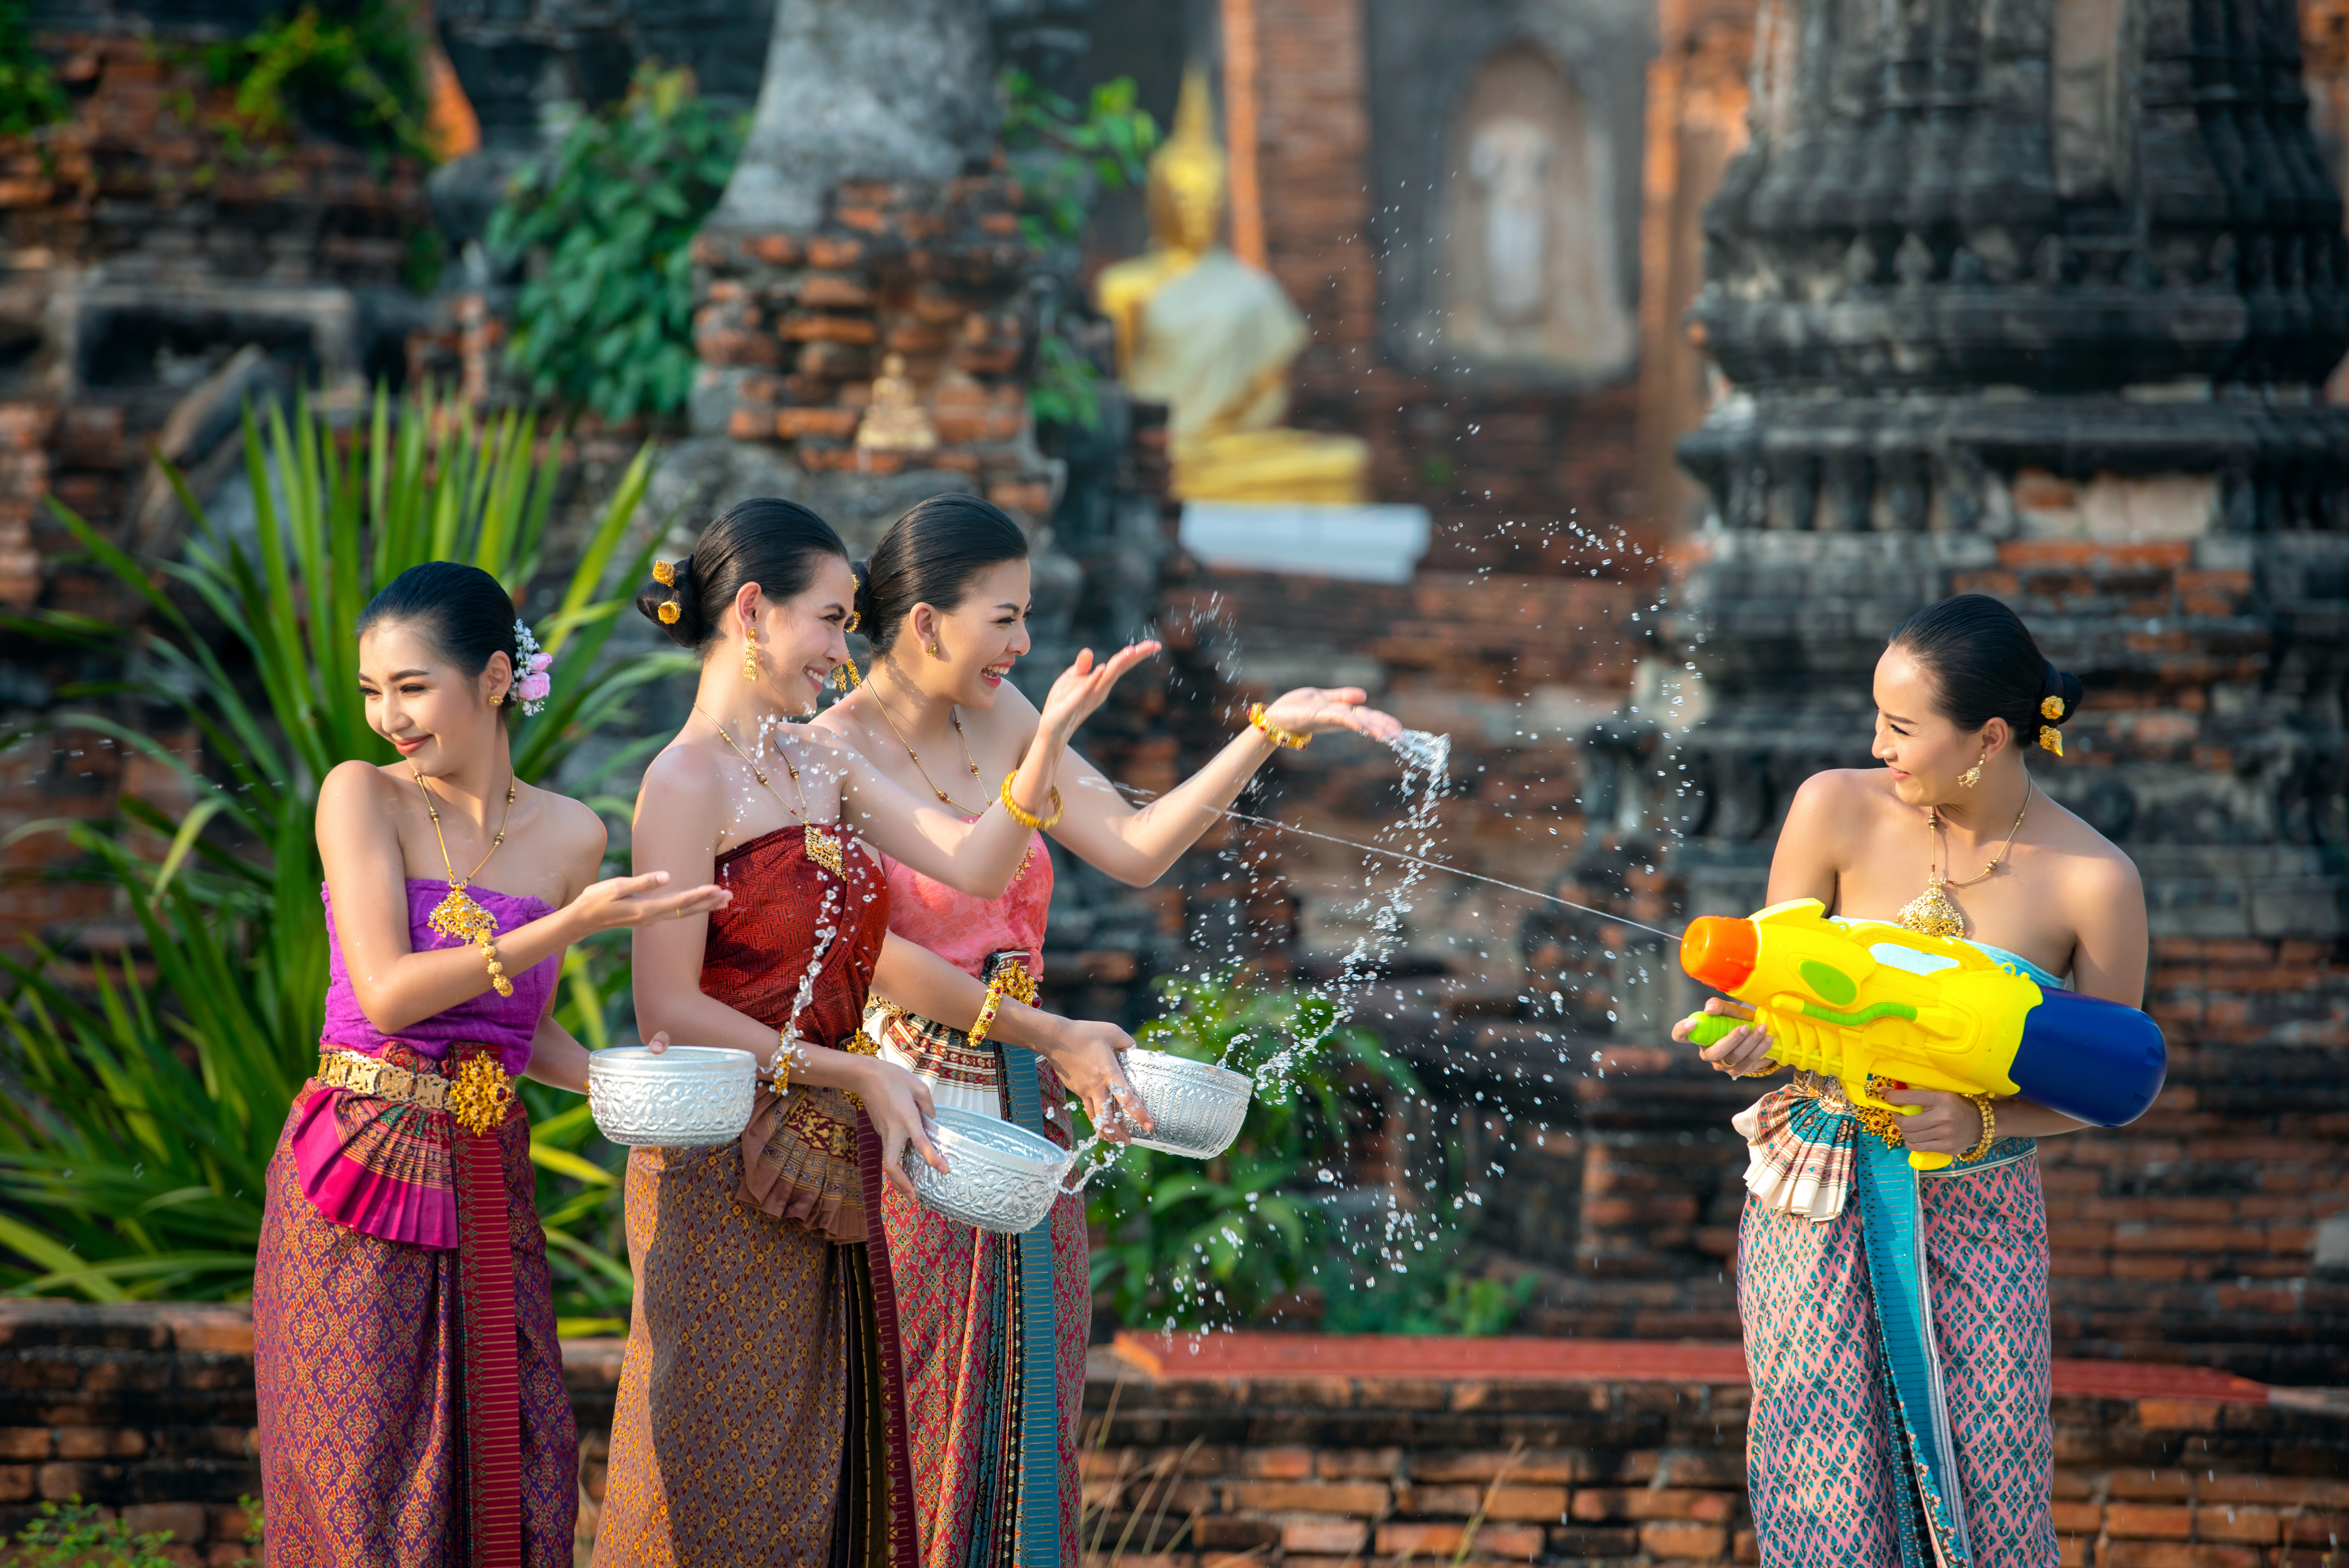 Cambodian women celebrating New Year with traditional water play.